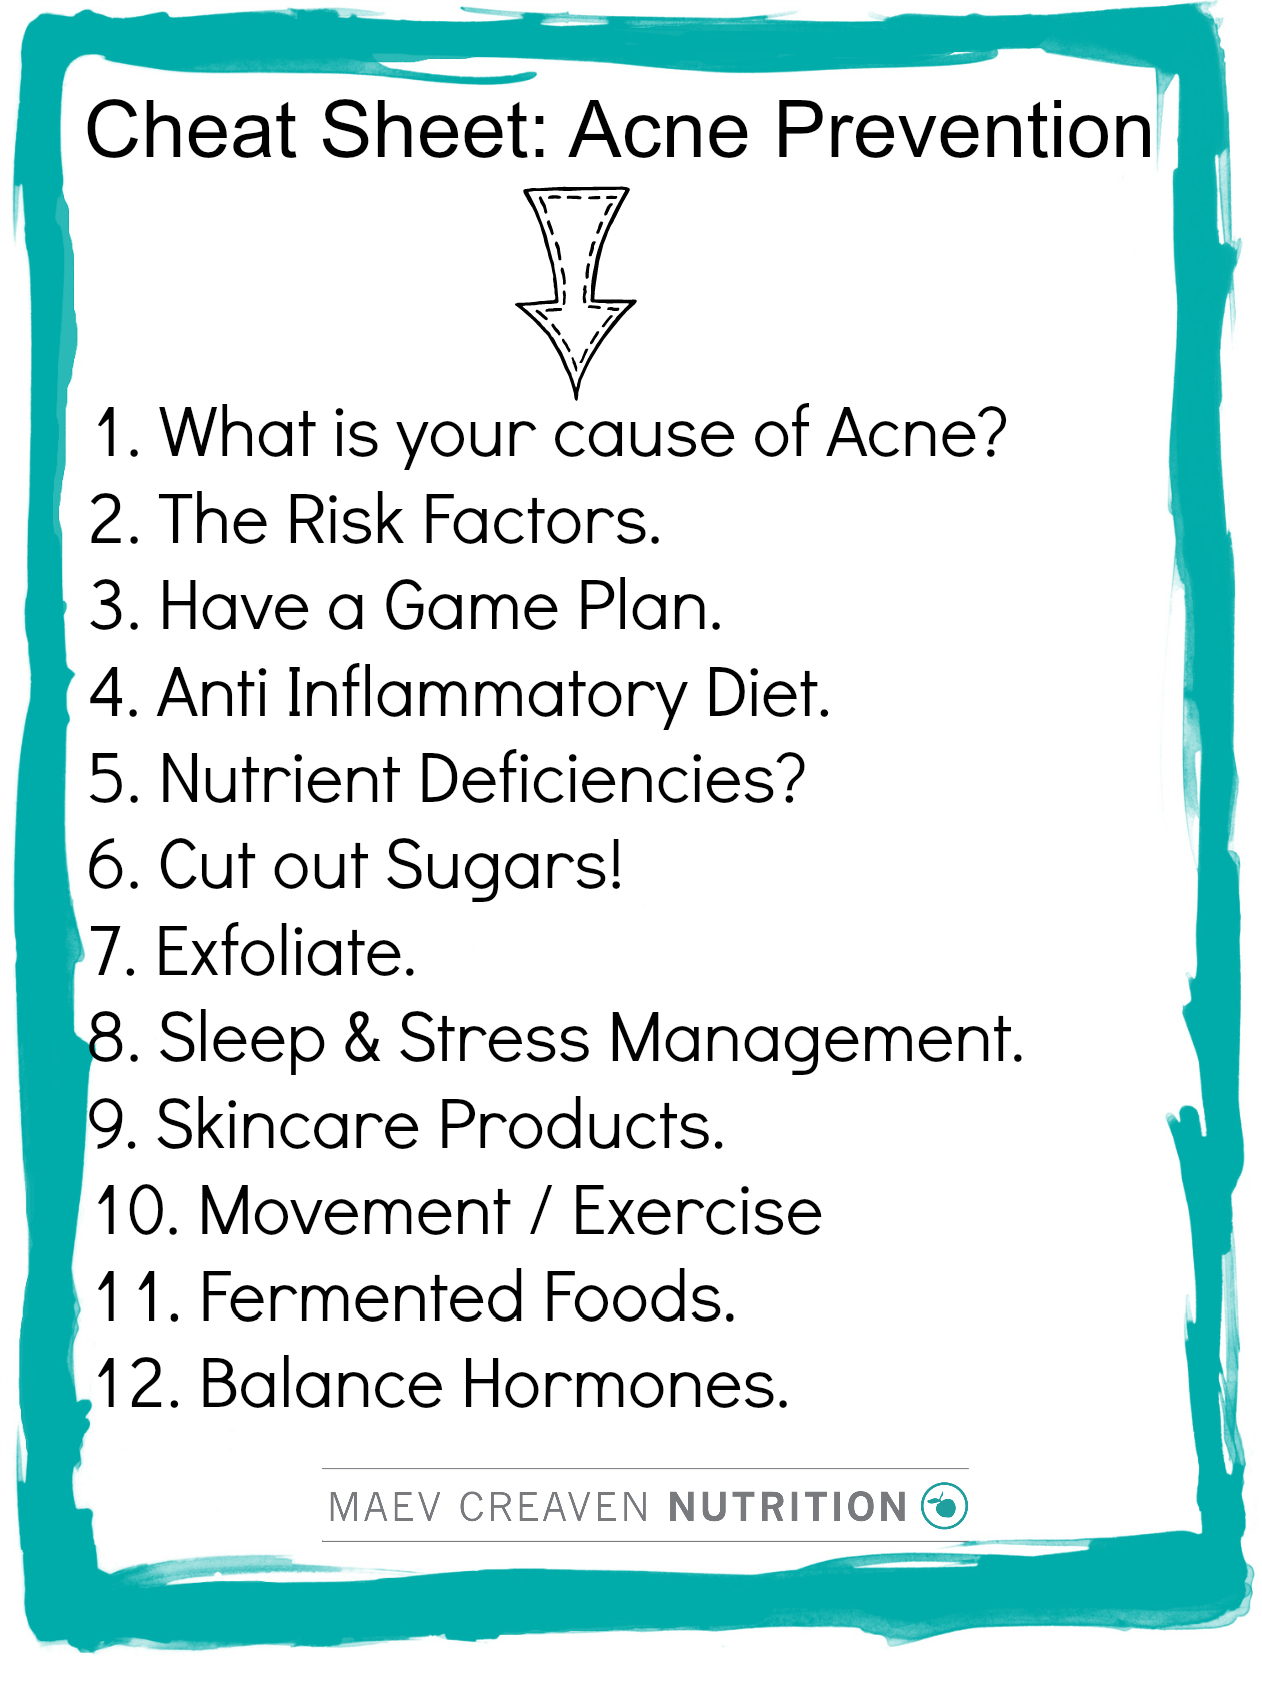 Cheat Sheet for Acne